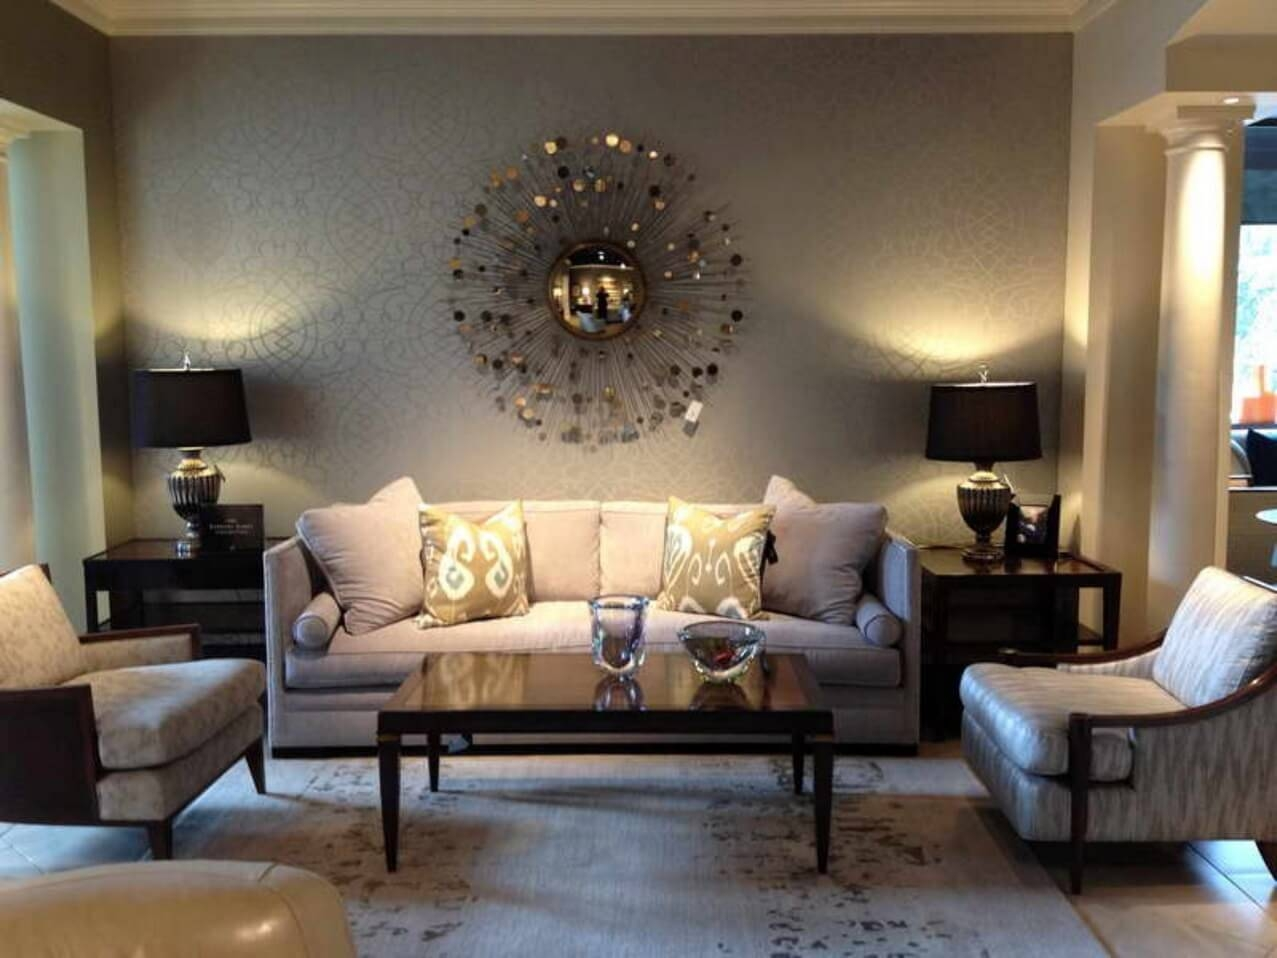 Astonishing Wall Decor Ideas Has Living Room Wall Decor And Latest Pertaining To Most Recent Exclusive Wall Art (View 13 of 20)